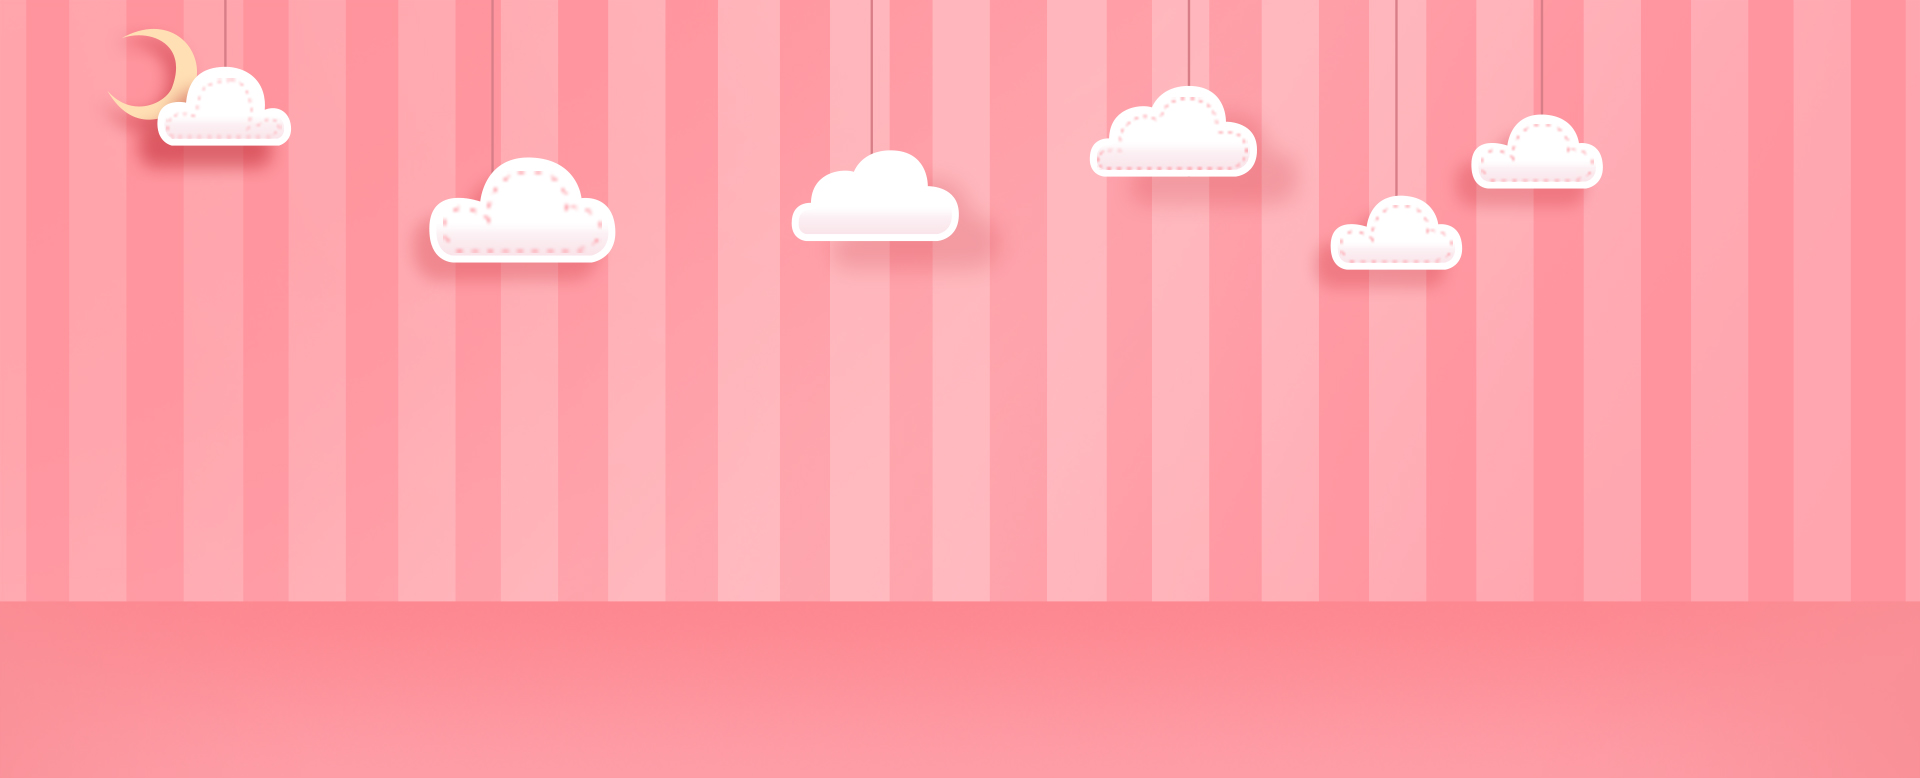 Cartoon Clouds Background Pink Full Screen Poster Lynx